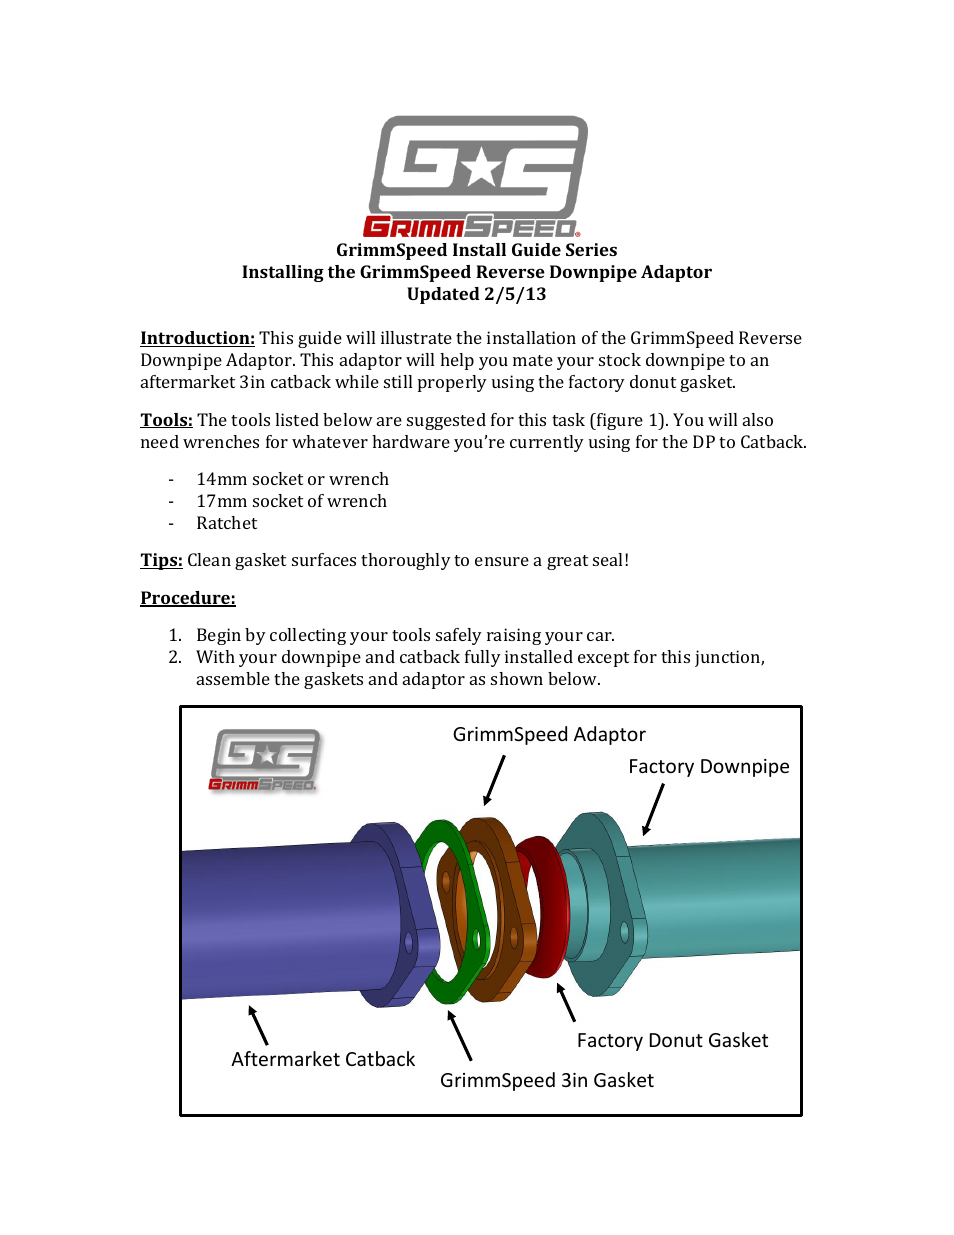 GrimmSpeed Subaru Reverse Downpipe Adapter User Manual | 2 pages